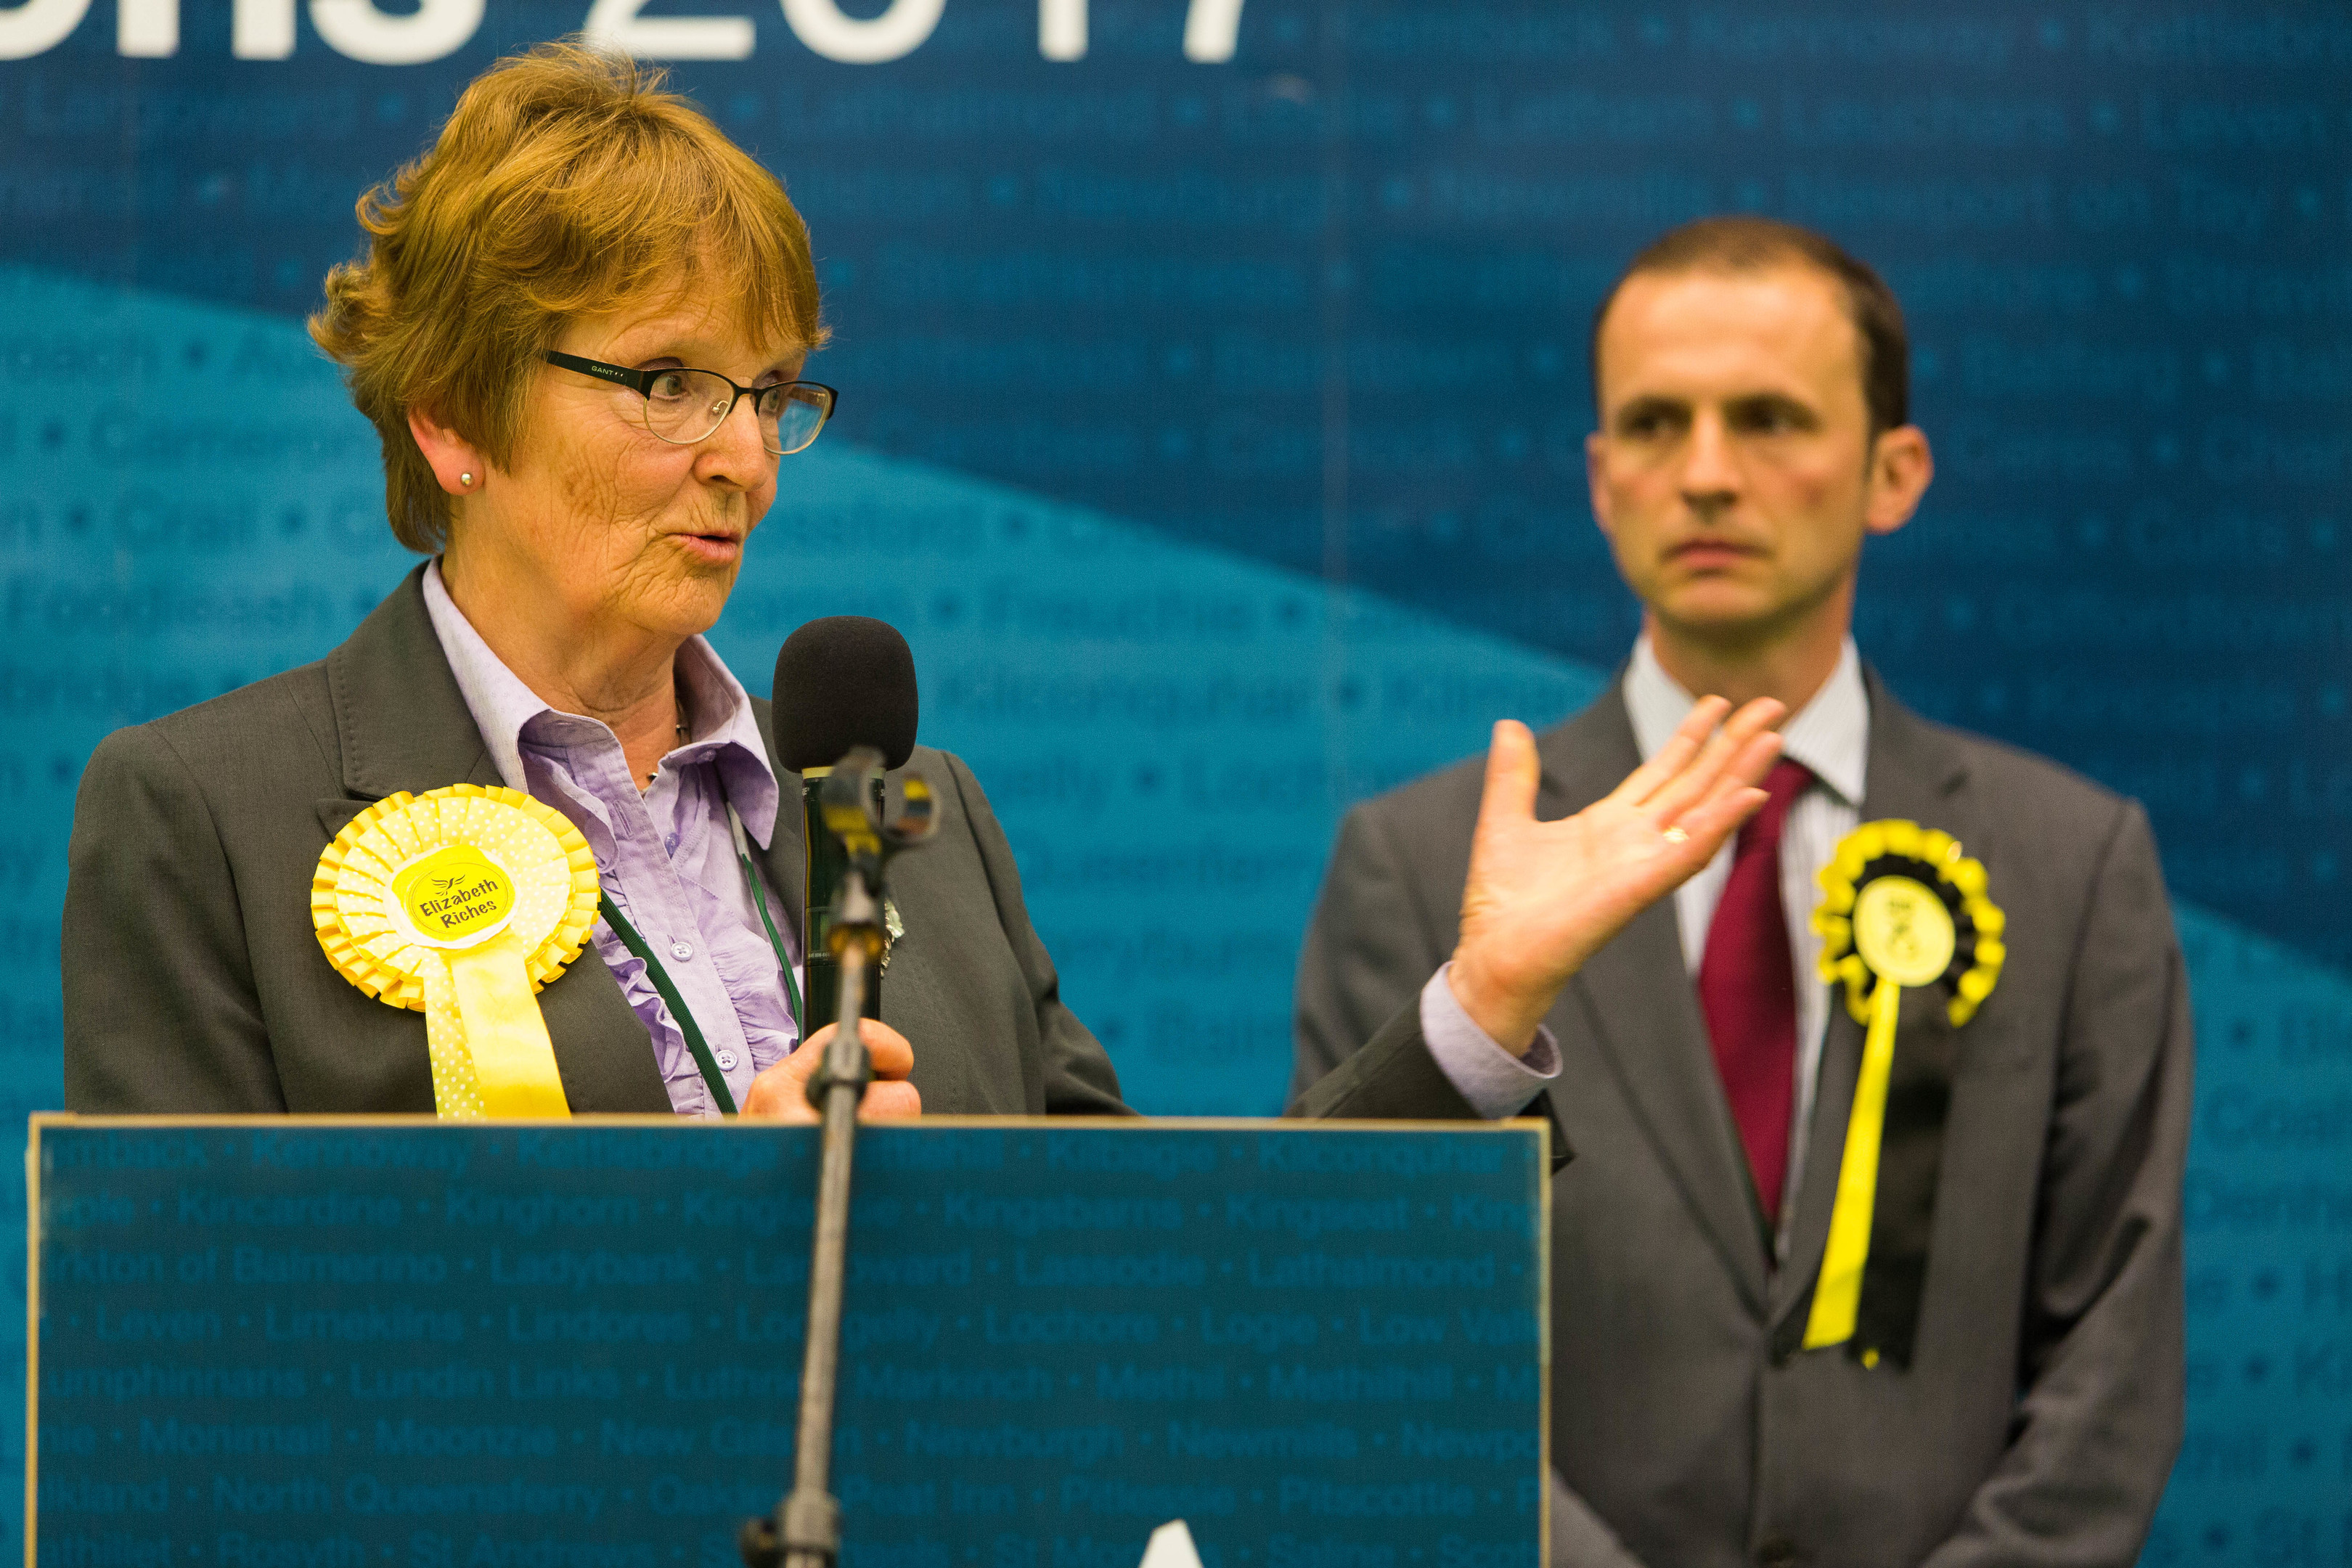 Elizabeth Riches and Stephen Gethins on stage at the count in Glenrothes in the early hours of Friday morning.